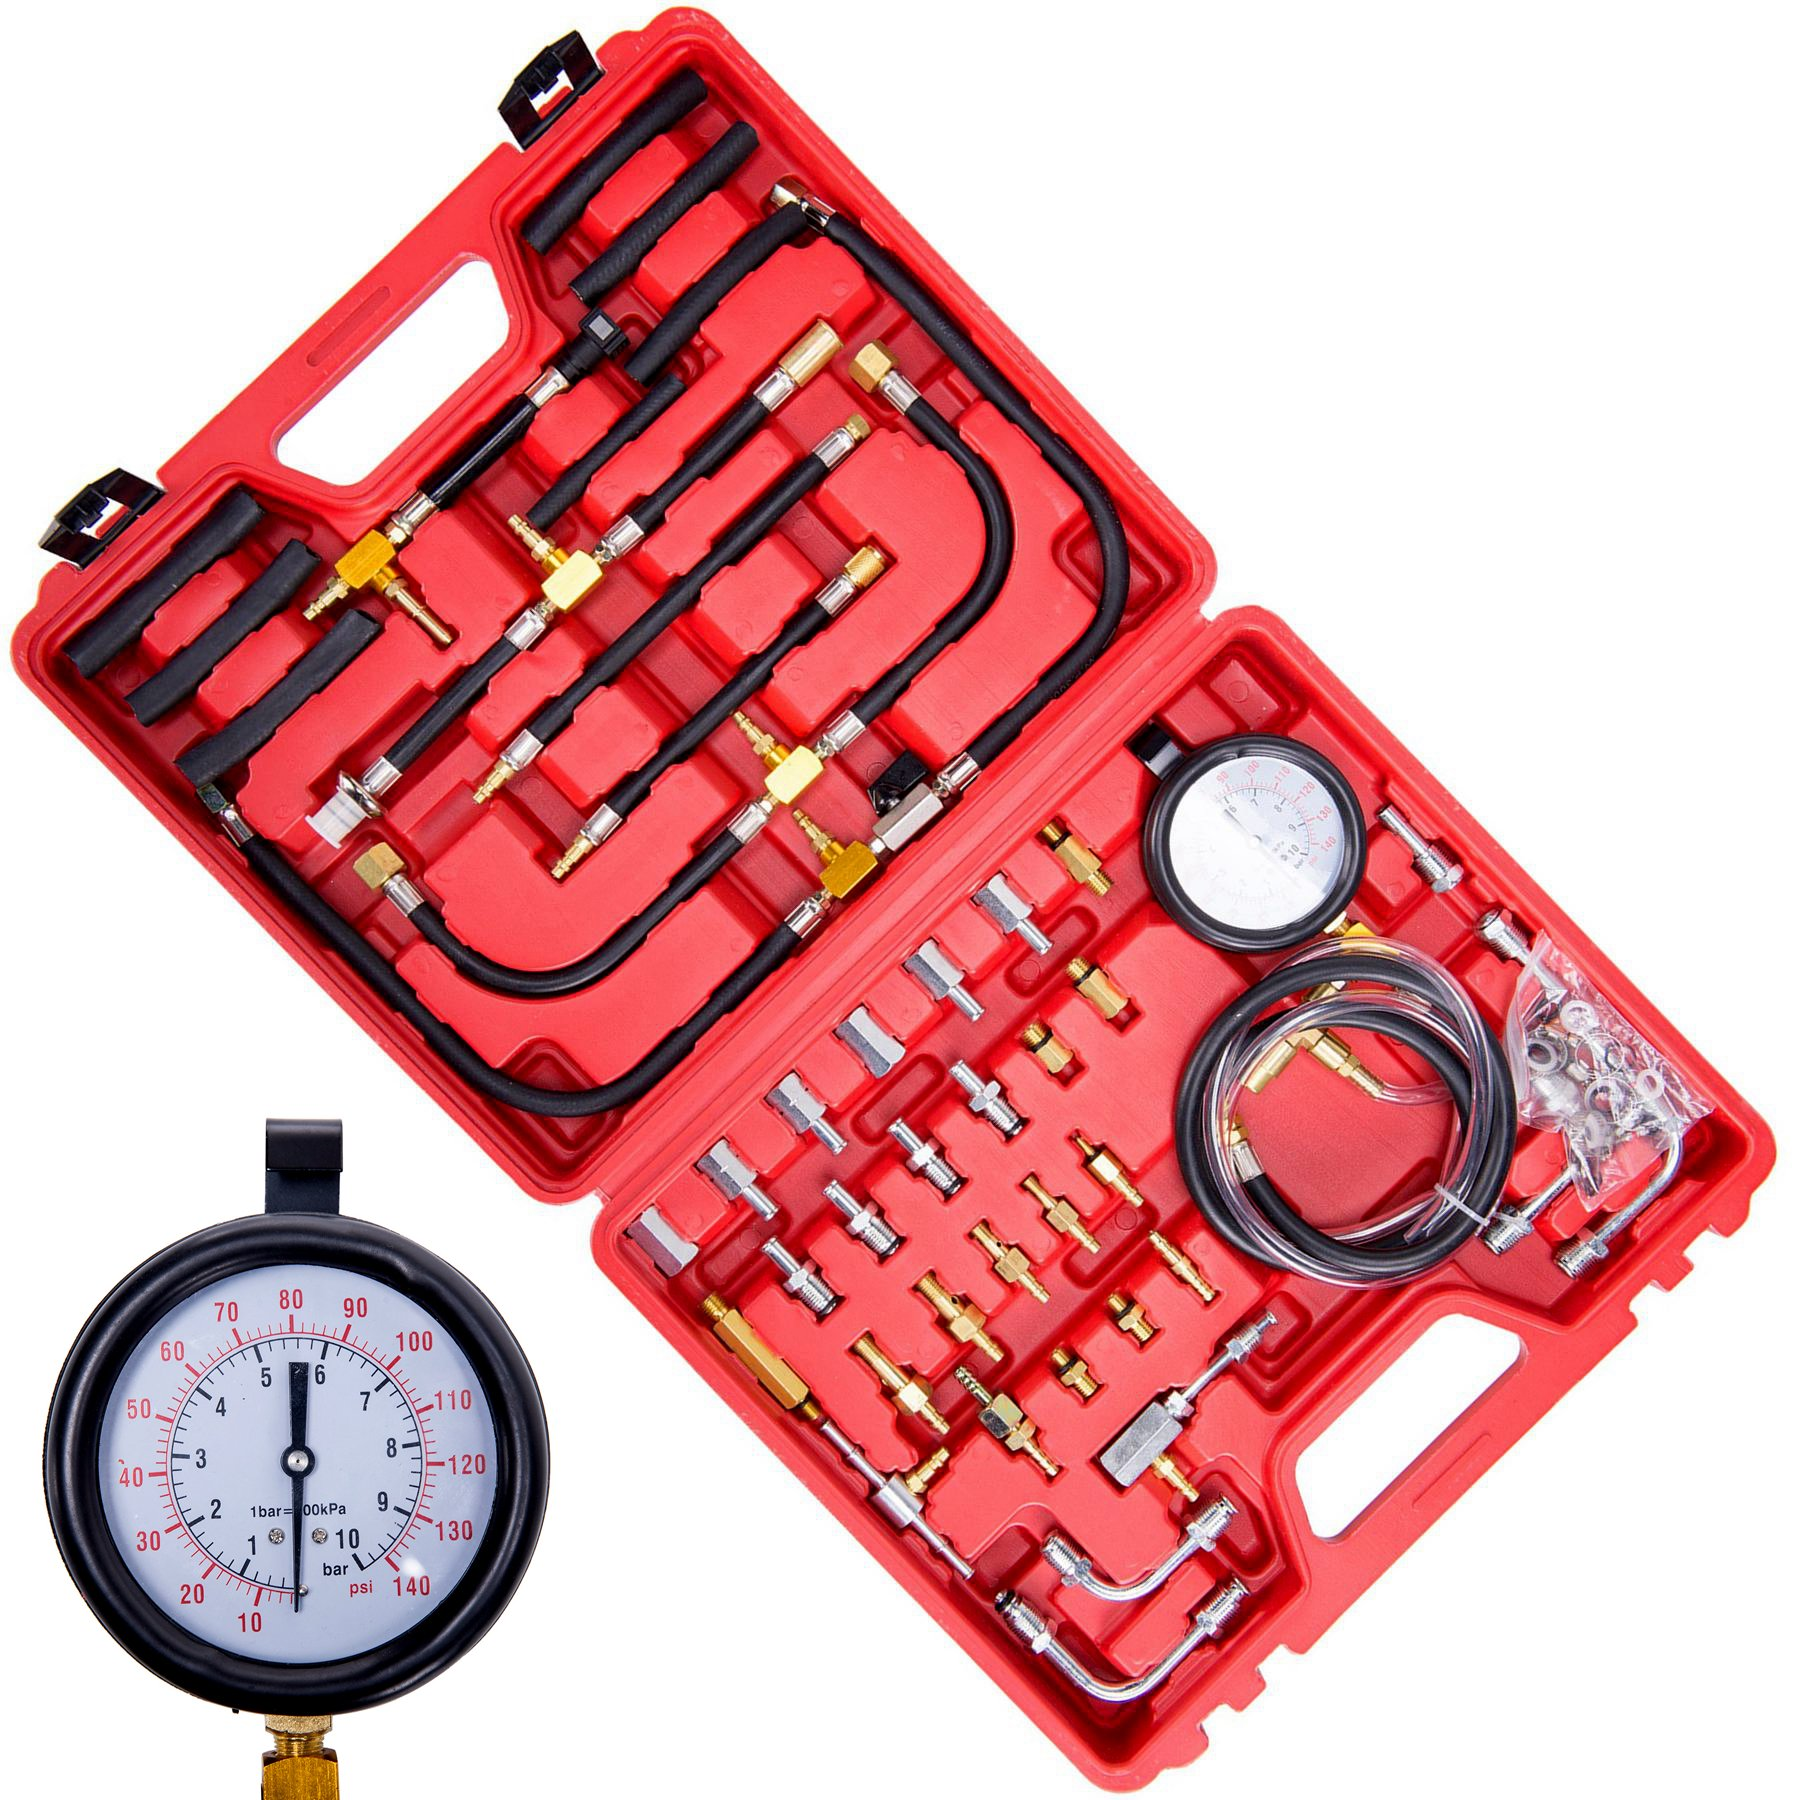 OrionMotorTech Professional Fuel Injection Pressure Tester Gauge Tool Kit with Complate Adapter Fitting Set,Dual Scale for Max 140 PSI (10 Bar)